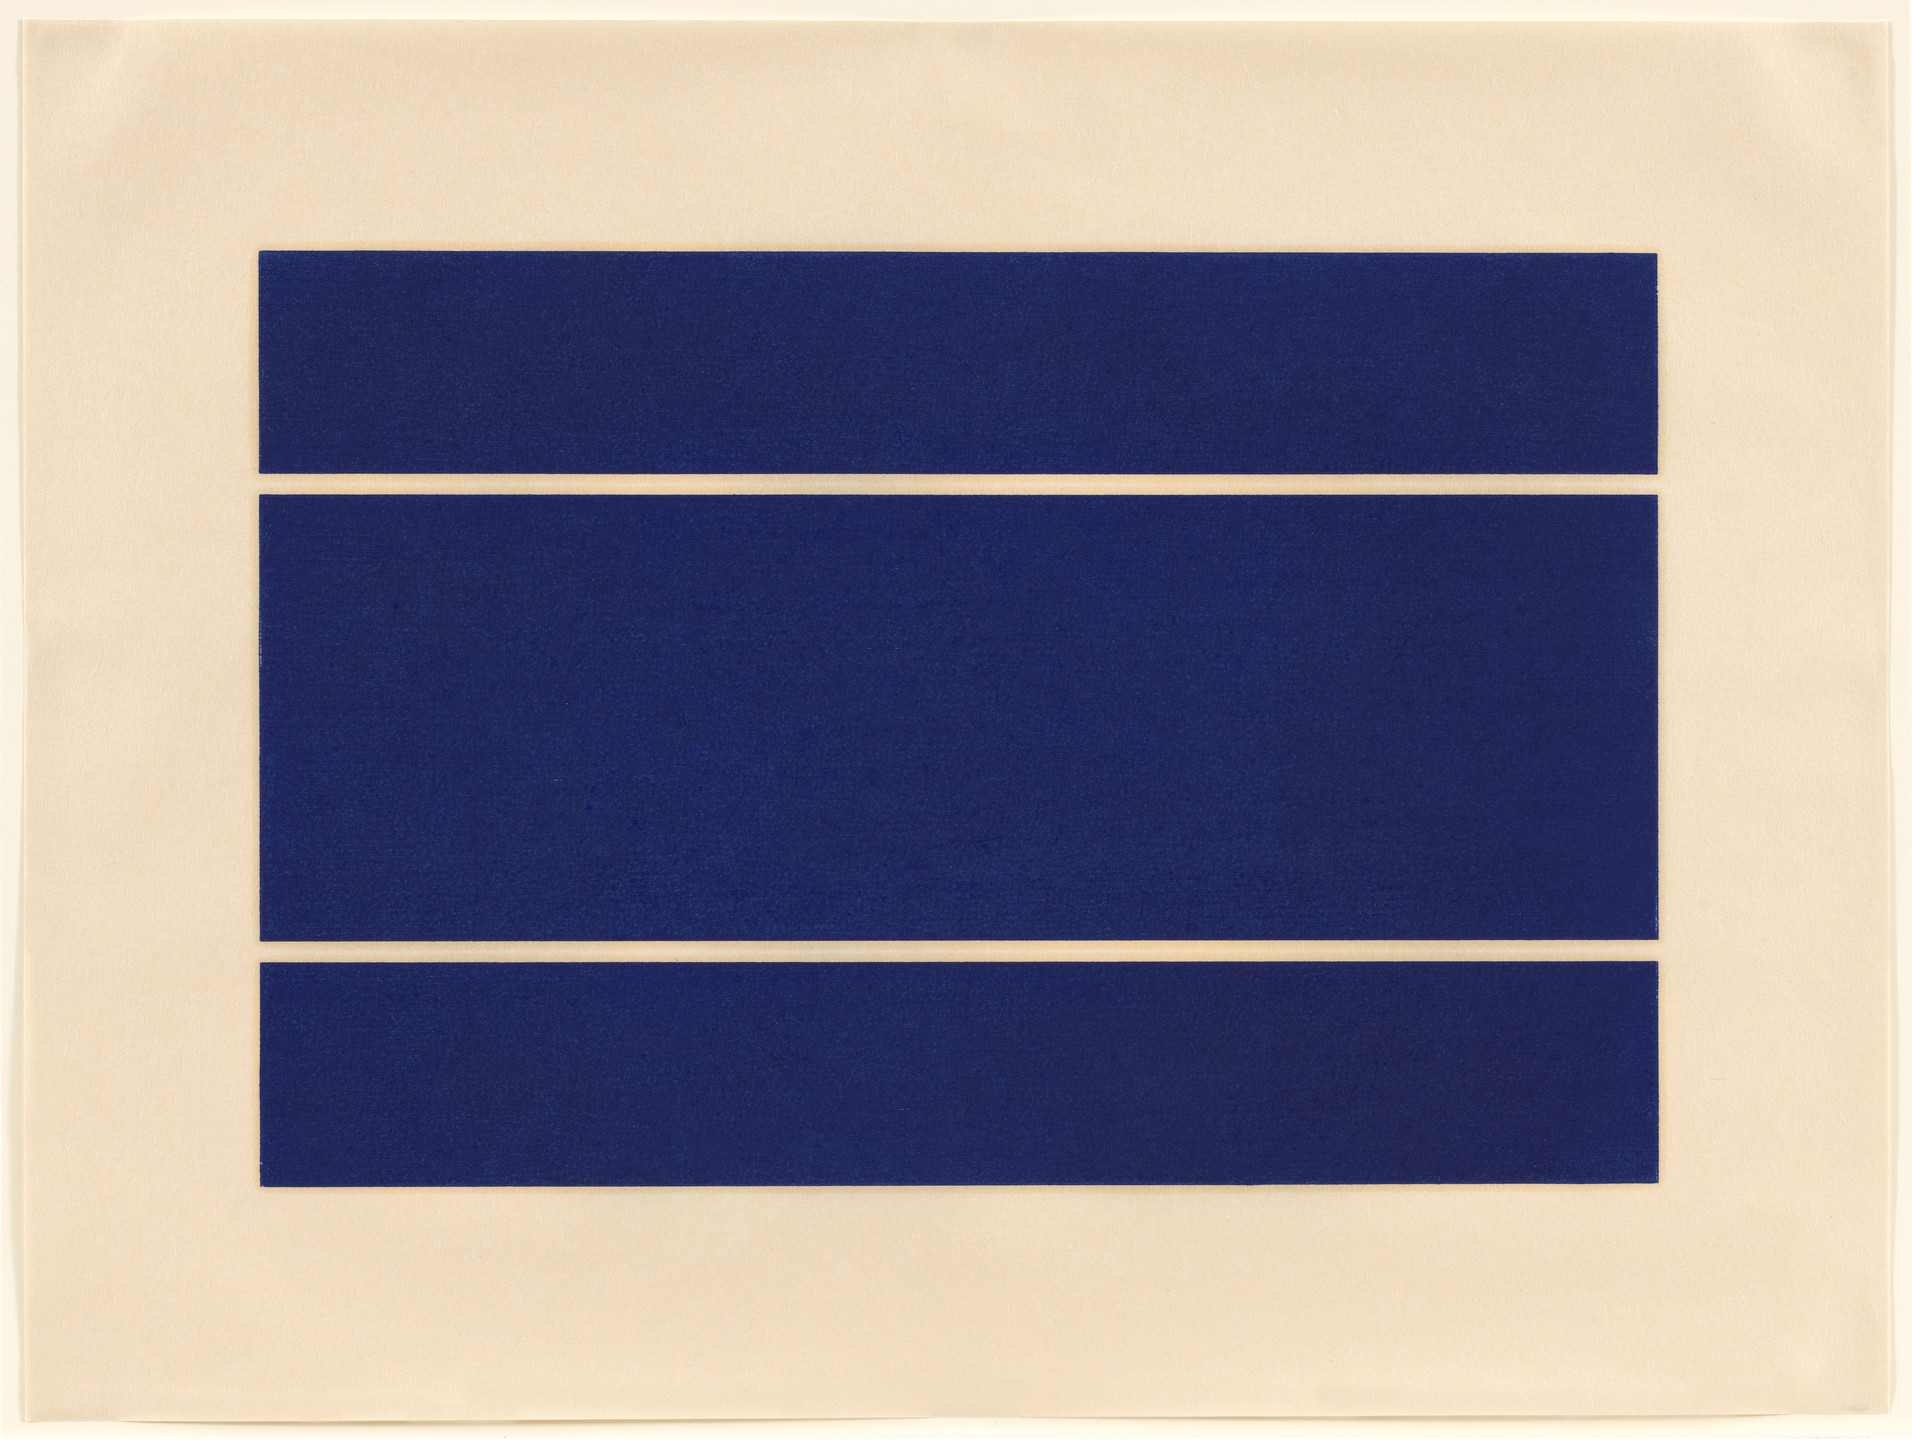 Donald Judd. Untitled from an untitled portfolio. 1988